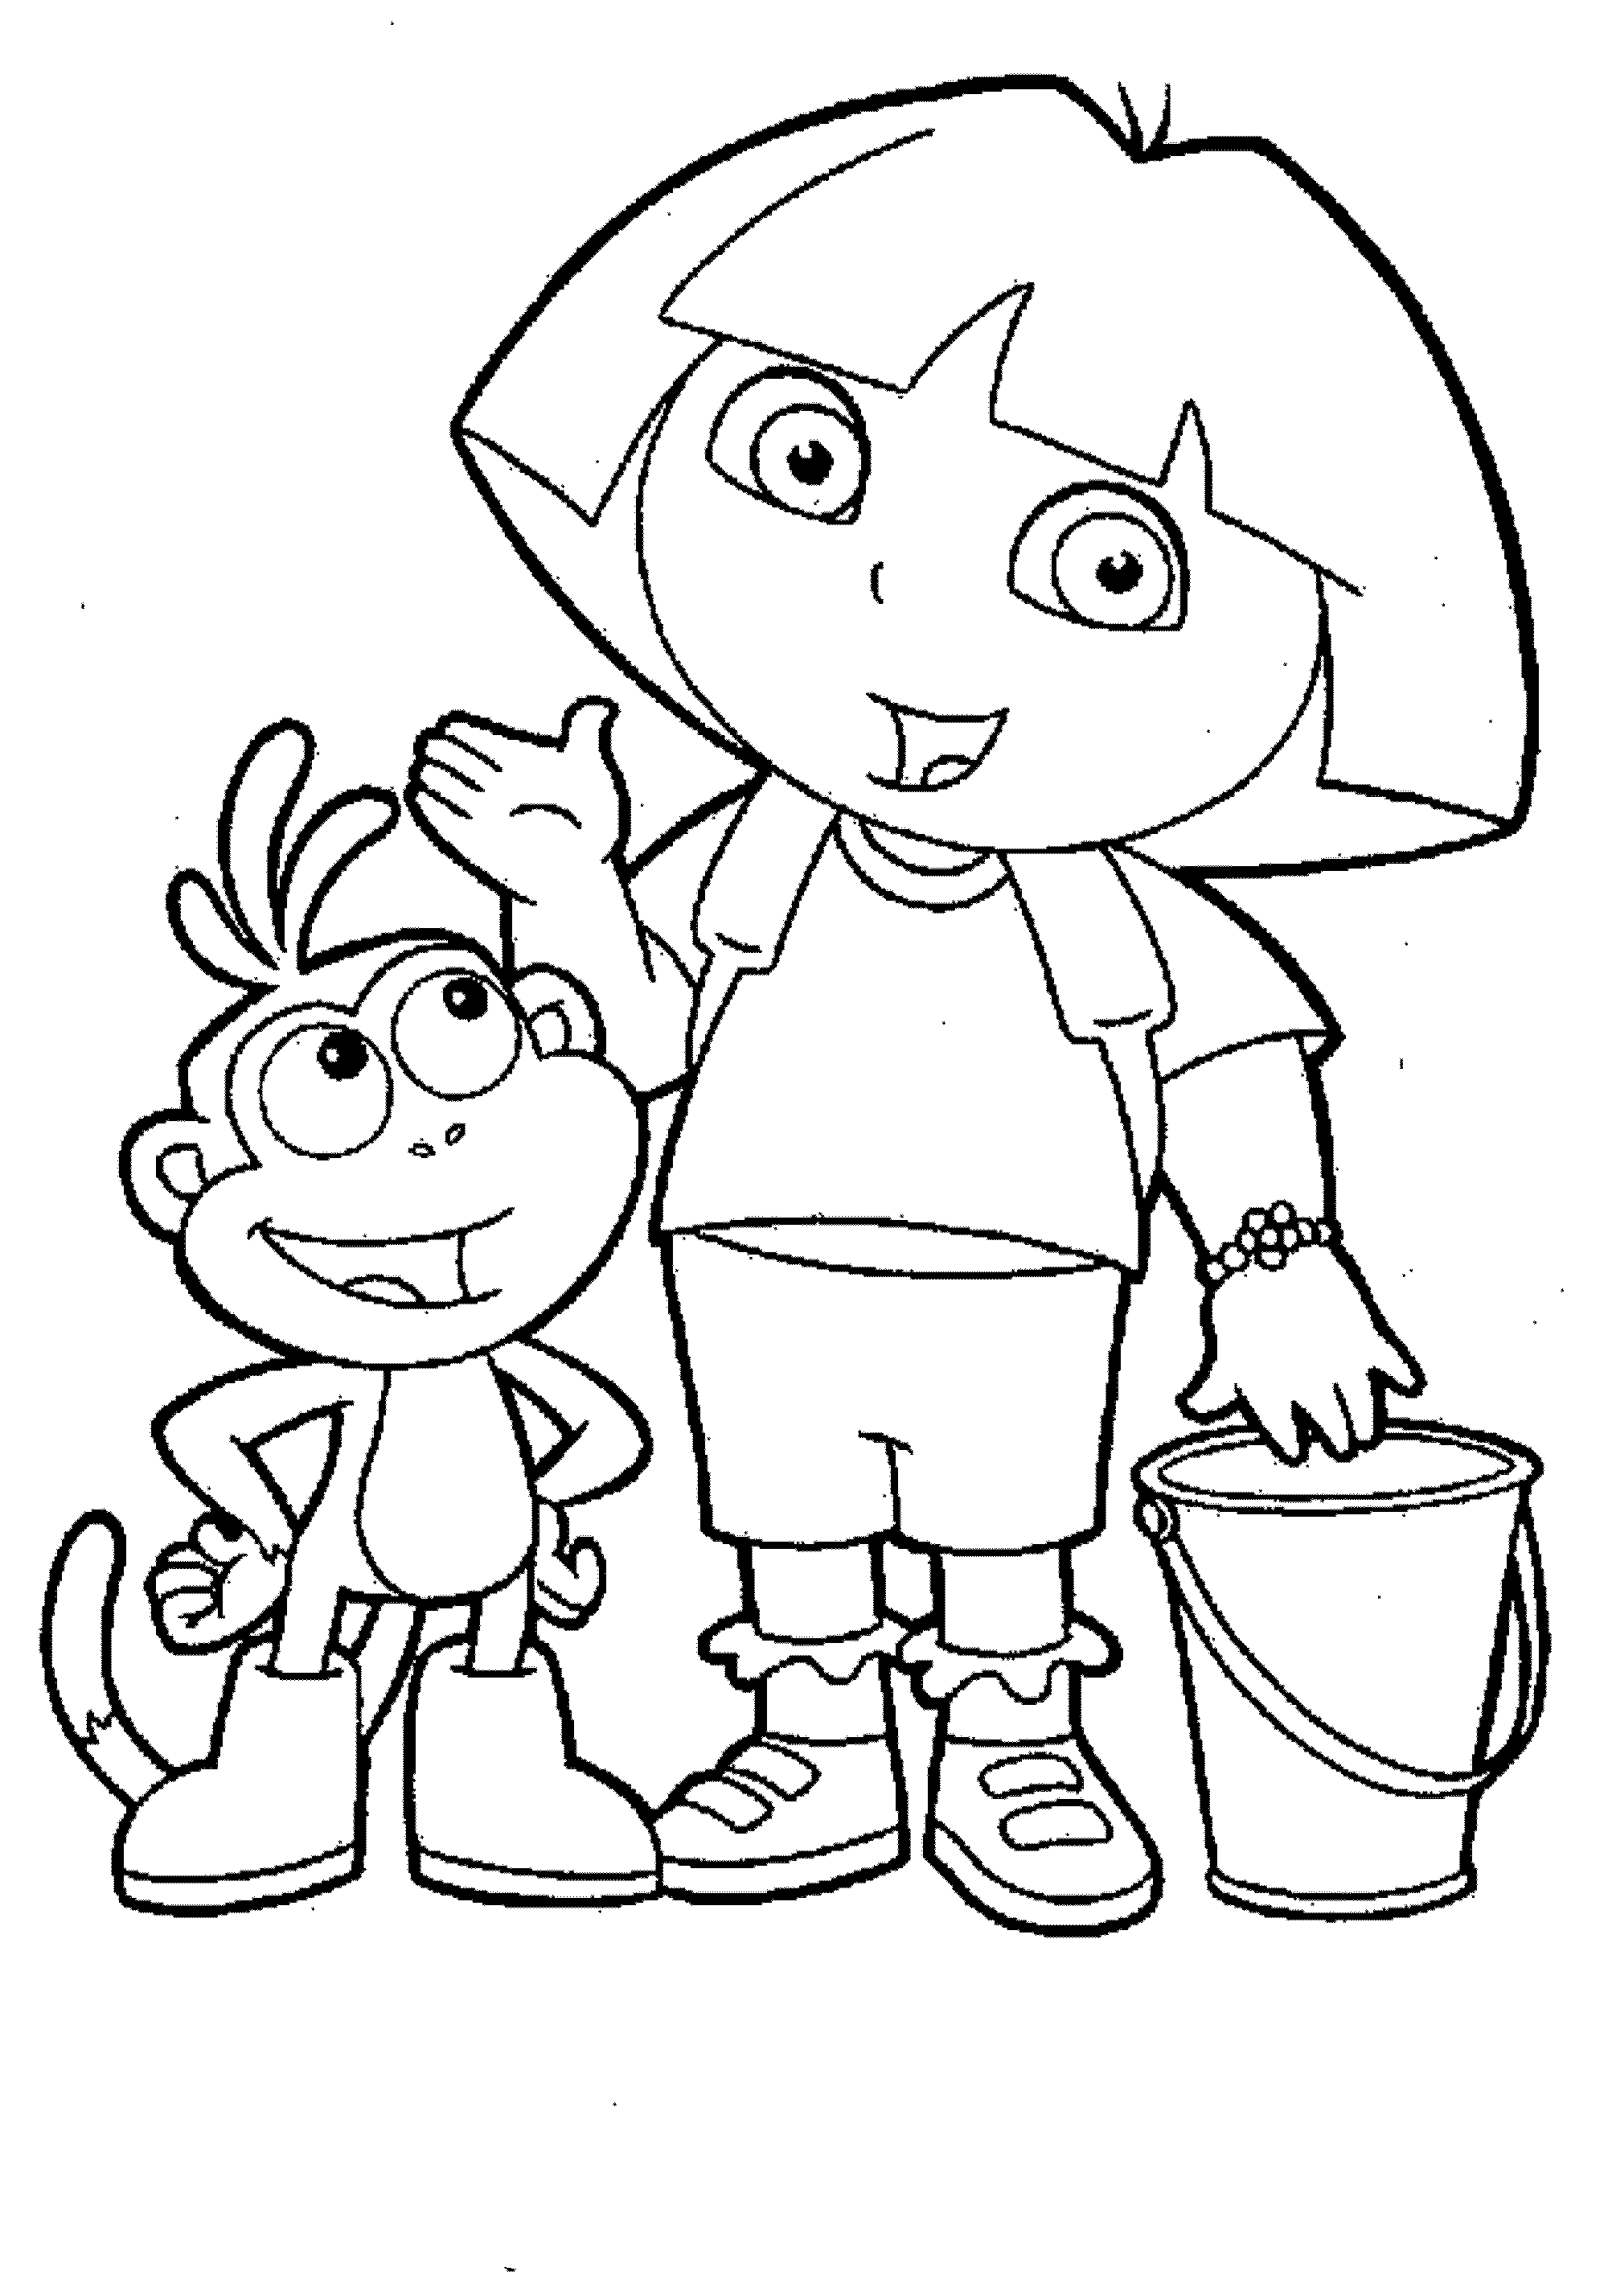 dora coloring pages to print free printable dora coloring pages for kids cool2bkids to coloring dora print pages